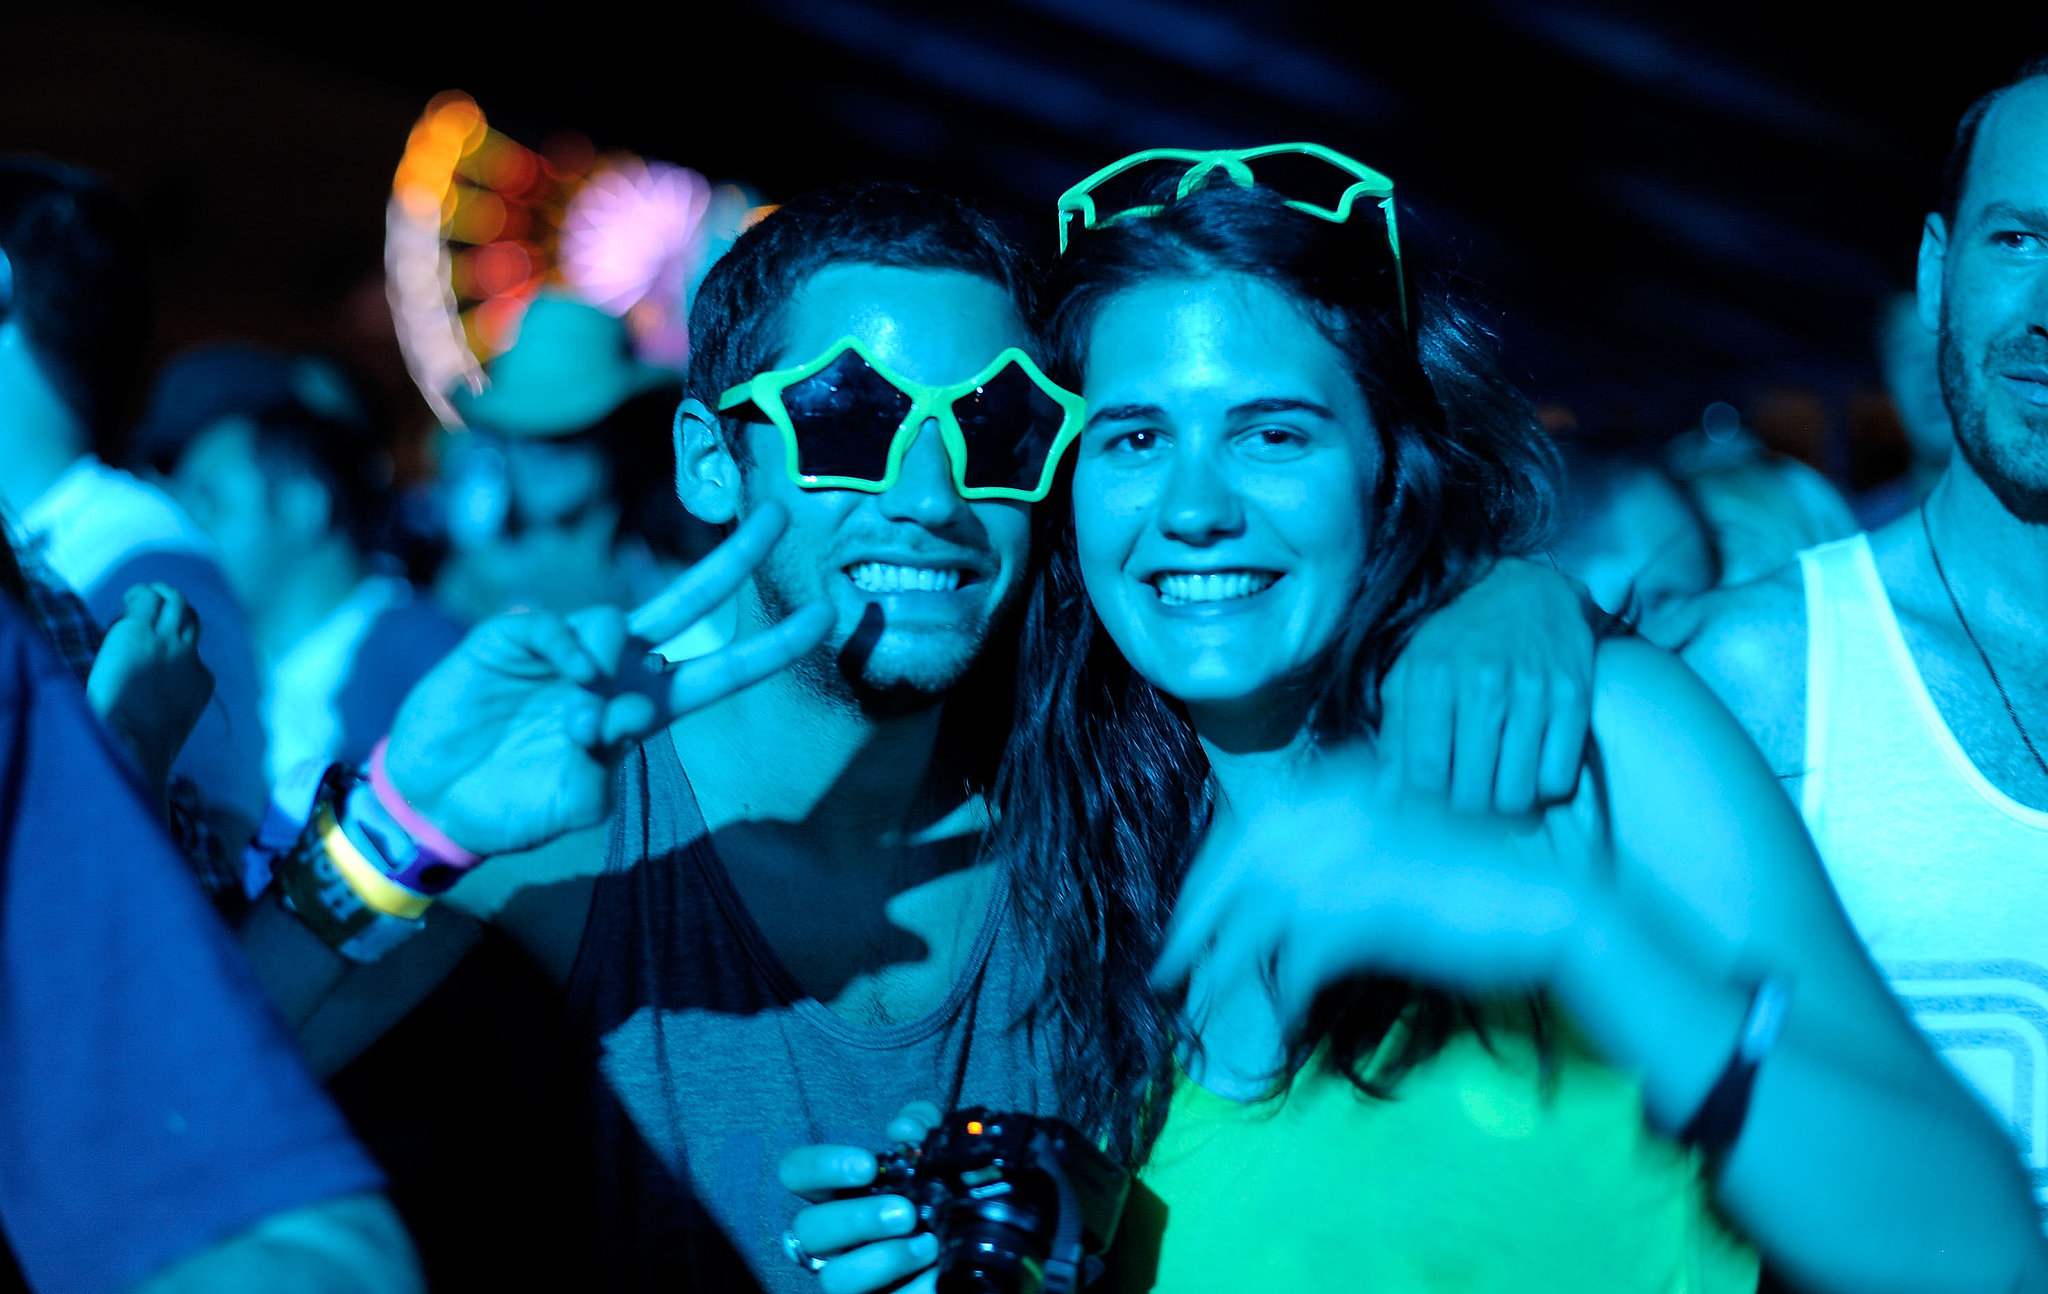 Seeing stars, these music fans got close at the Coachella Valley Music & Arts Festival.